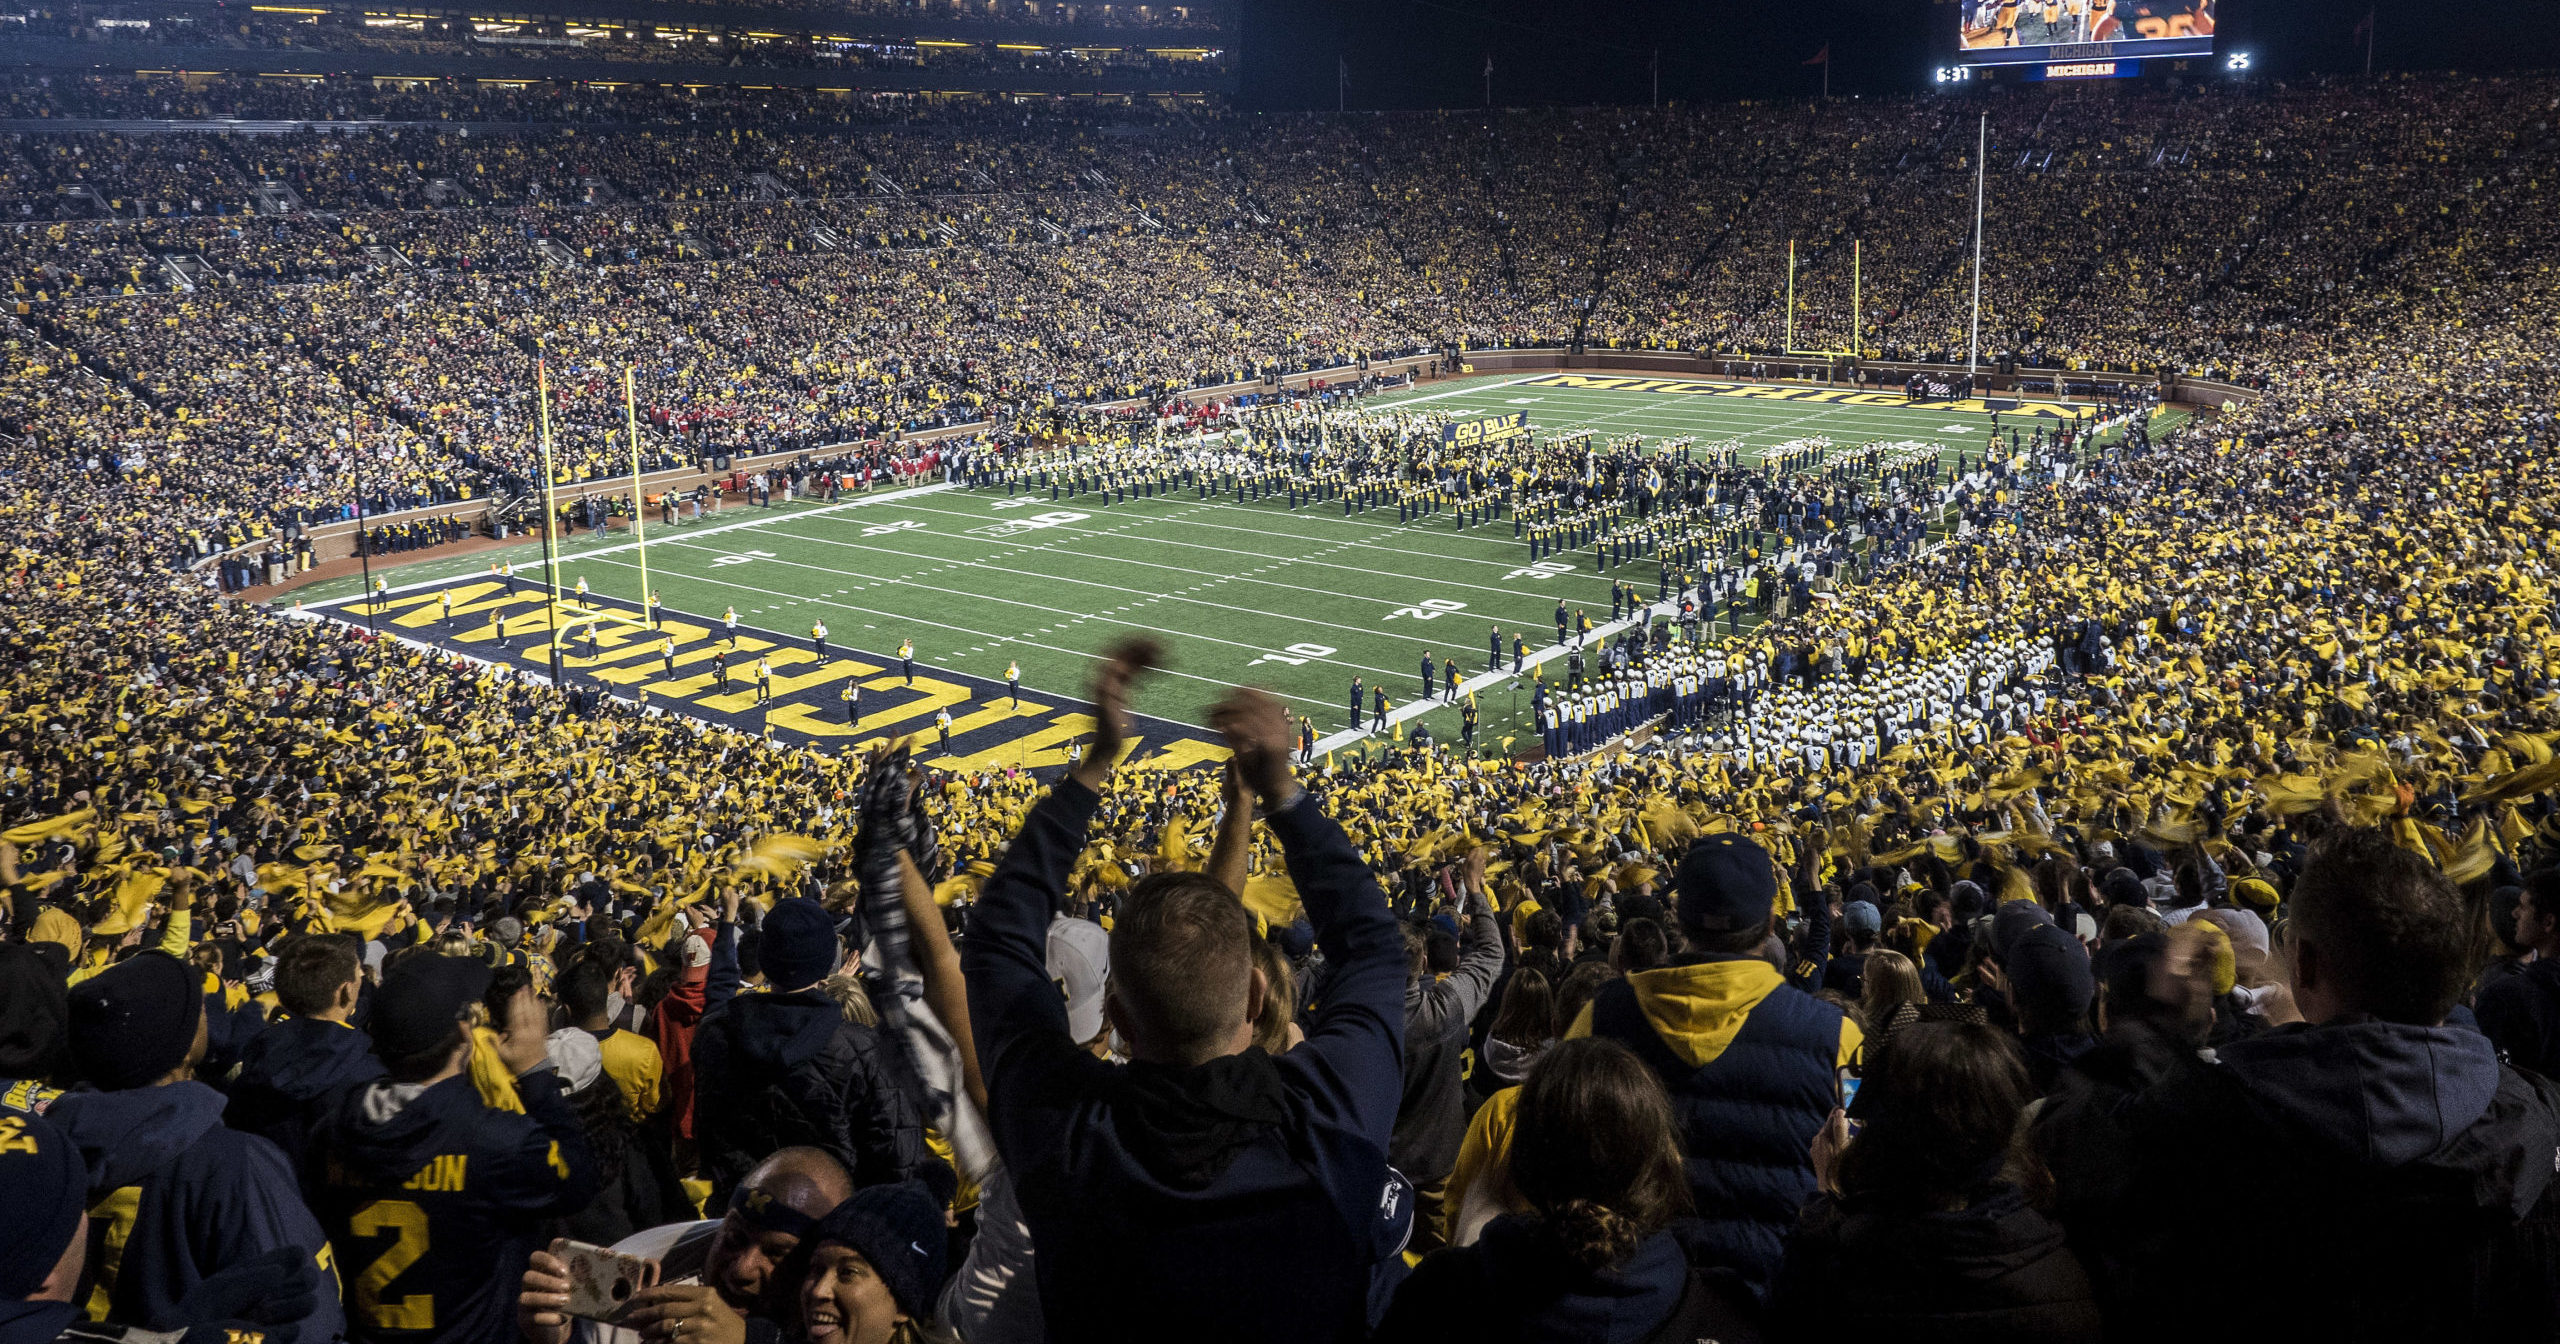 Fans cheer as Michigan takes the field at Michigan Stadium for an NCAA football game against Wisconsin in Ann Arbor, Michigan, on Oct. 13, 2018.